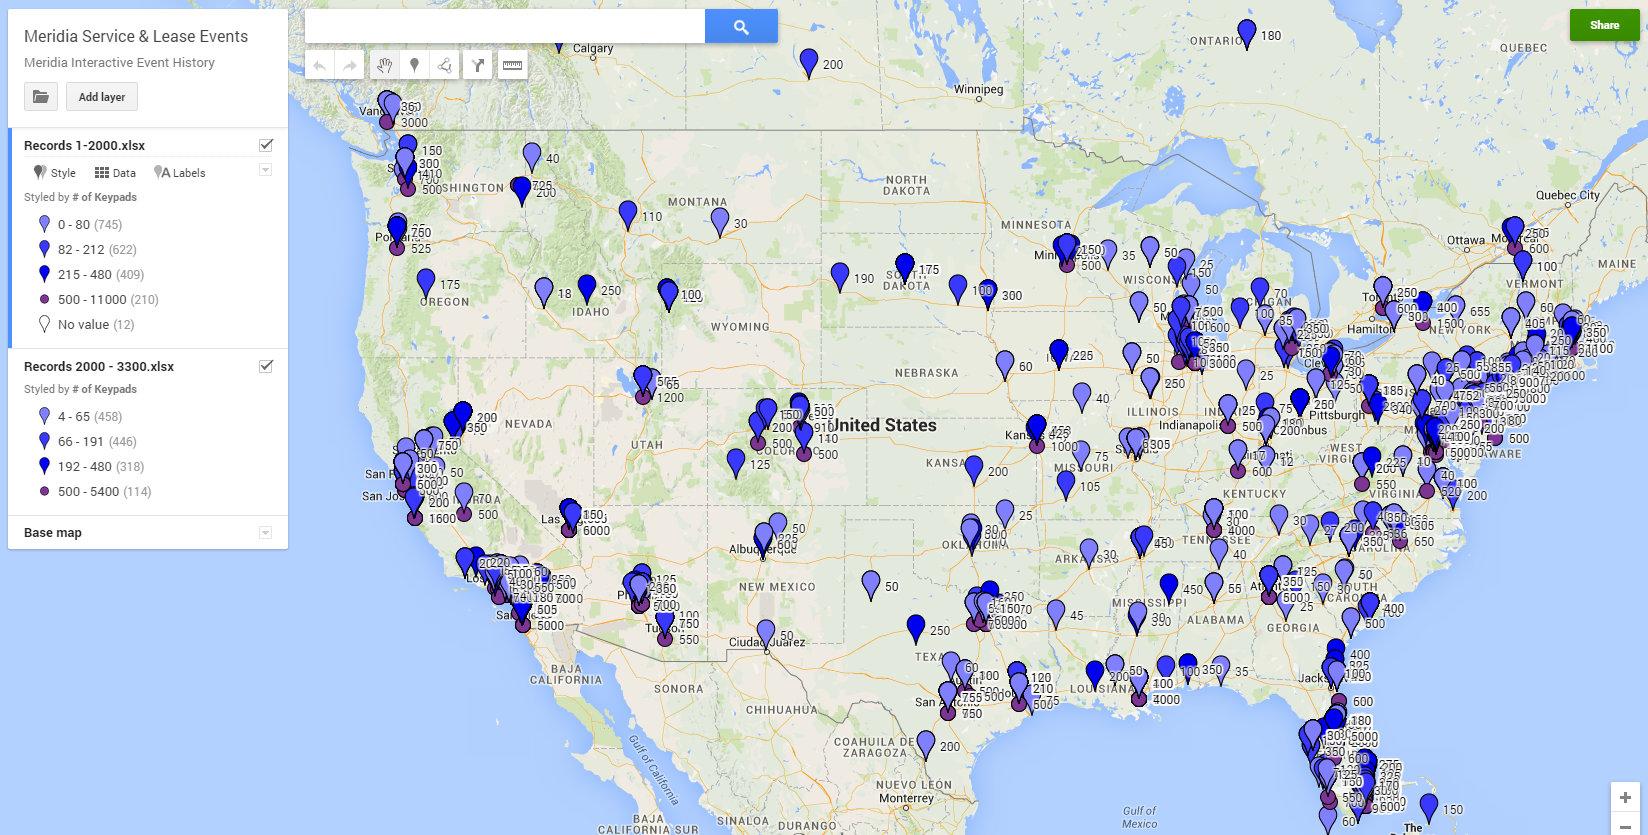 Map of Audience Response Events